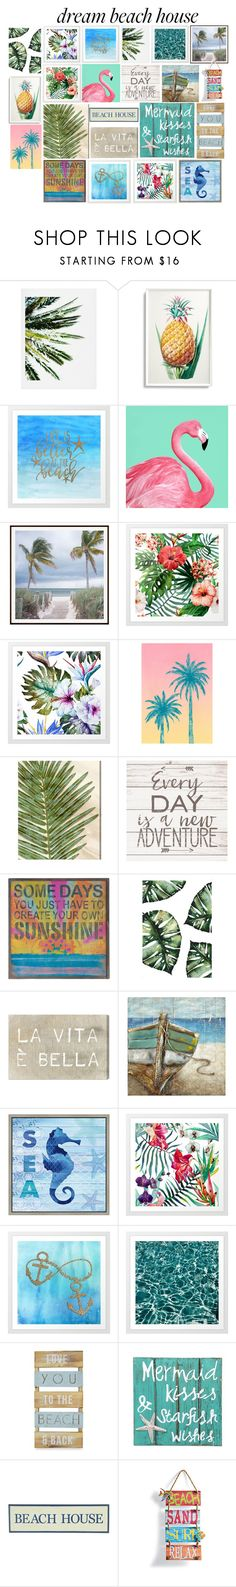 """""""wall decor."""" by downeastgirl88 ❤ liked on Polyvore featuring interior, interiors, interior design, home, home decor, interior decorating, DENY Designs, Frontgate, Pottery Barn and Tracie Andrews"""